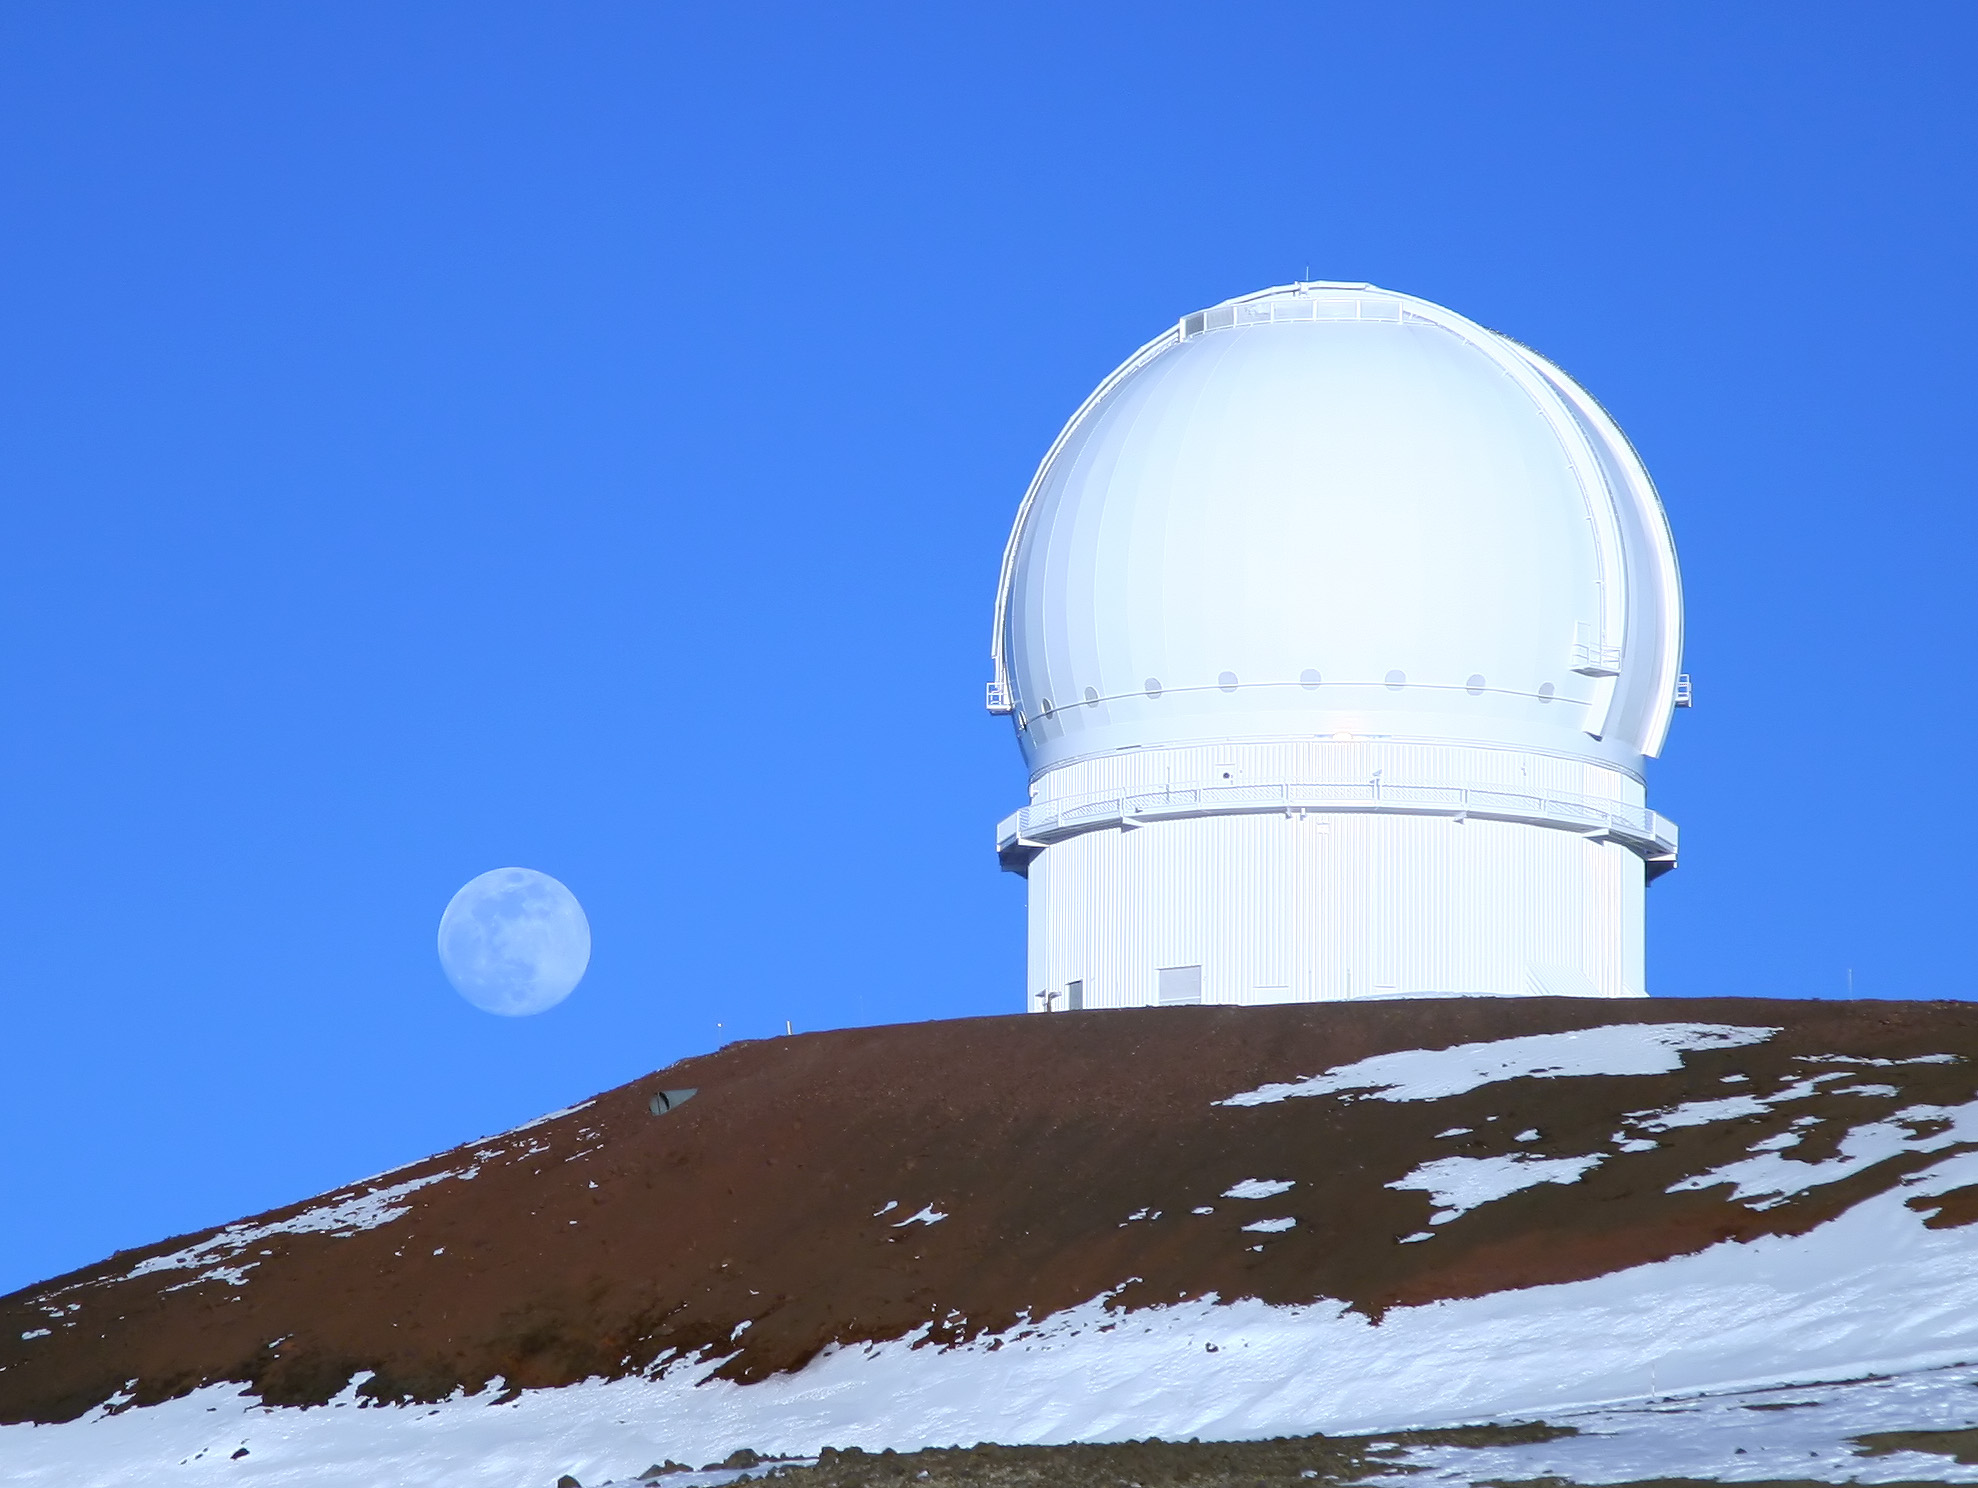 The Canada-France-Hawaii Telescope, using which RR245 was found. Credit: Wikimedia Commons